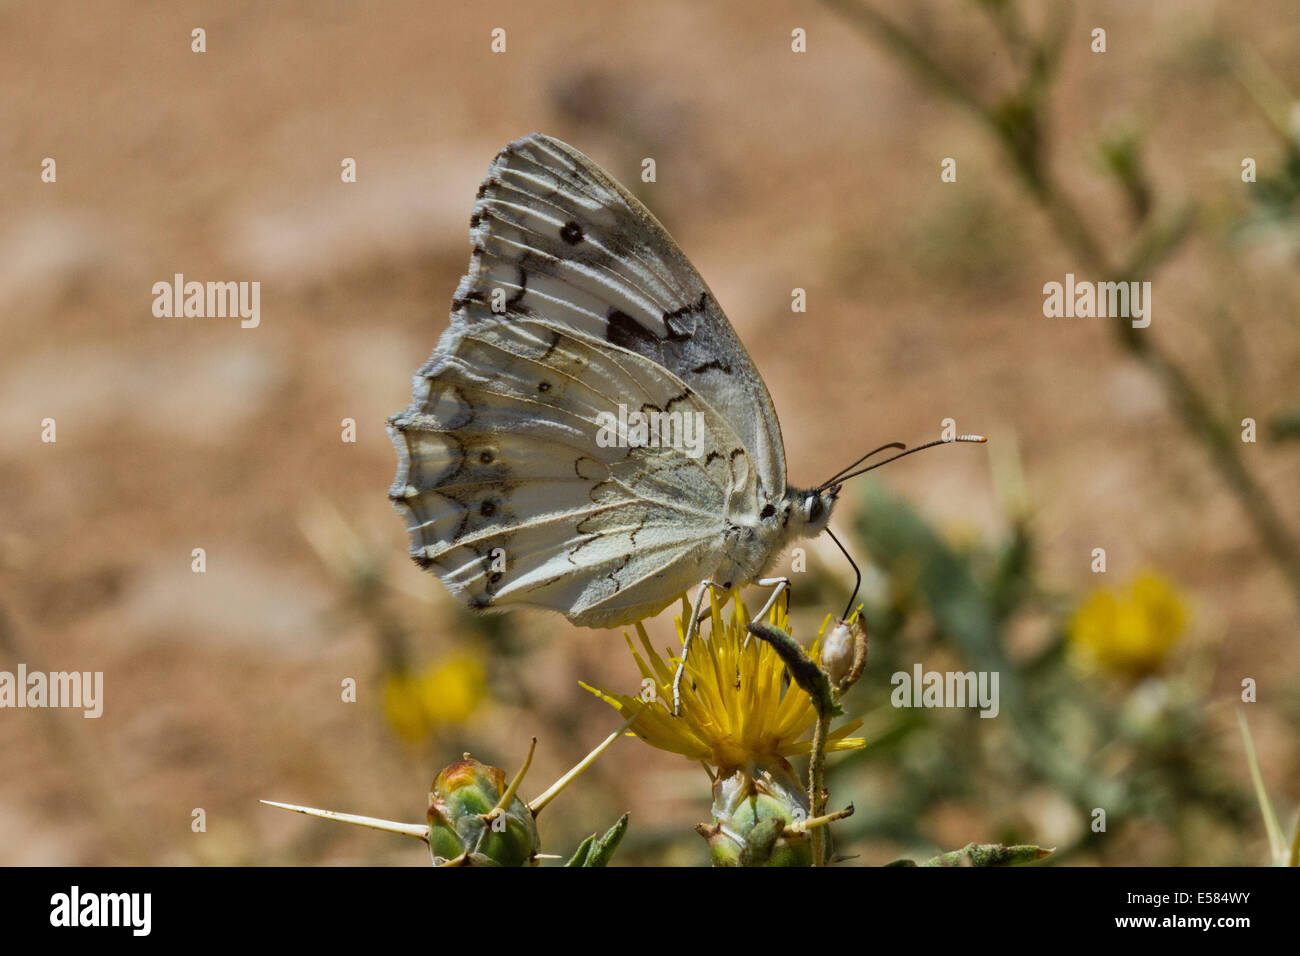 Marble White (Melanargia titea titania) on a flower. Photographed in Israel in May - Stock Image